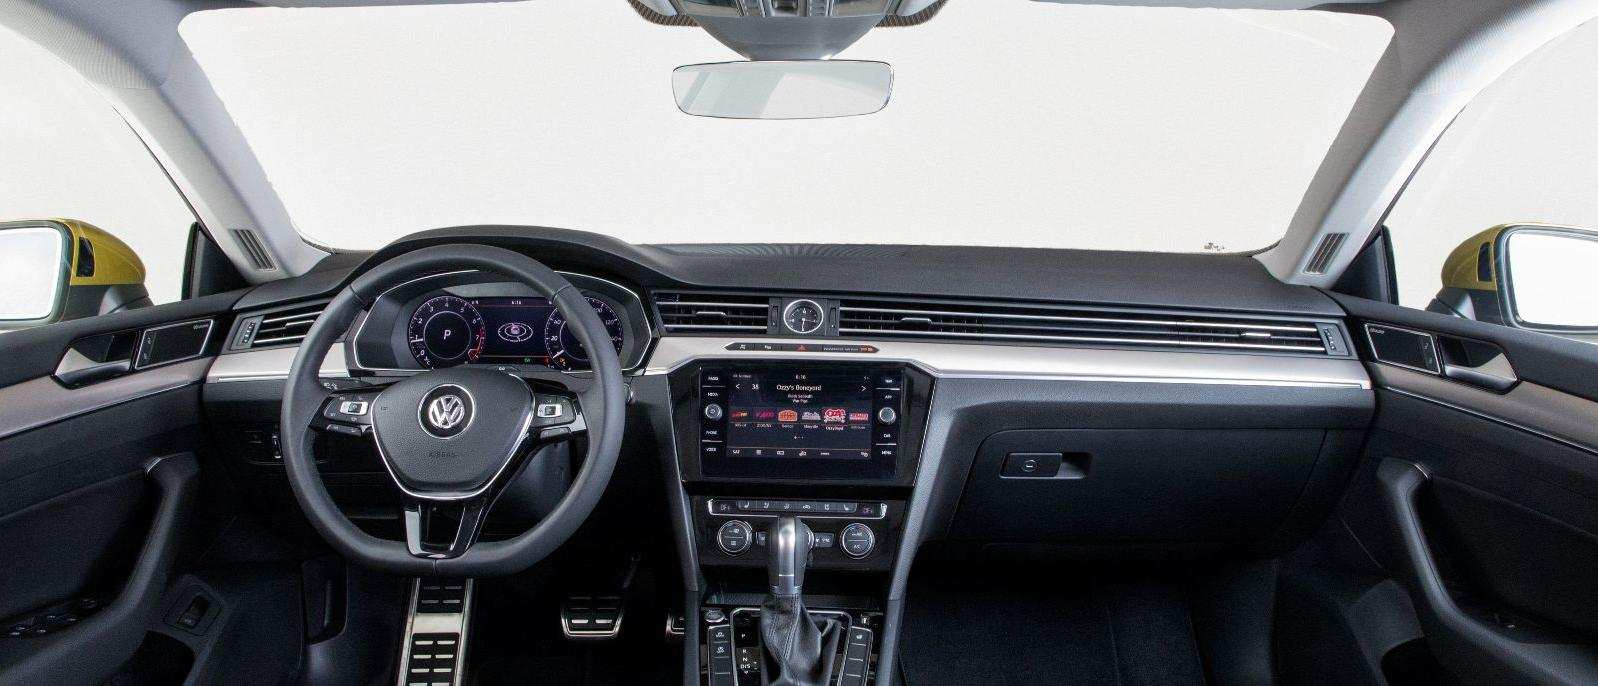 14 Best Review New Volkswagen Interior 2019 Specs Interior for New Volkswagen Interior 2019 Specs